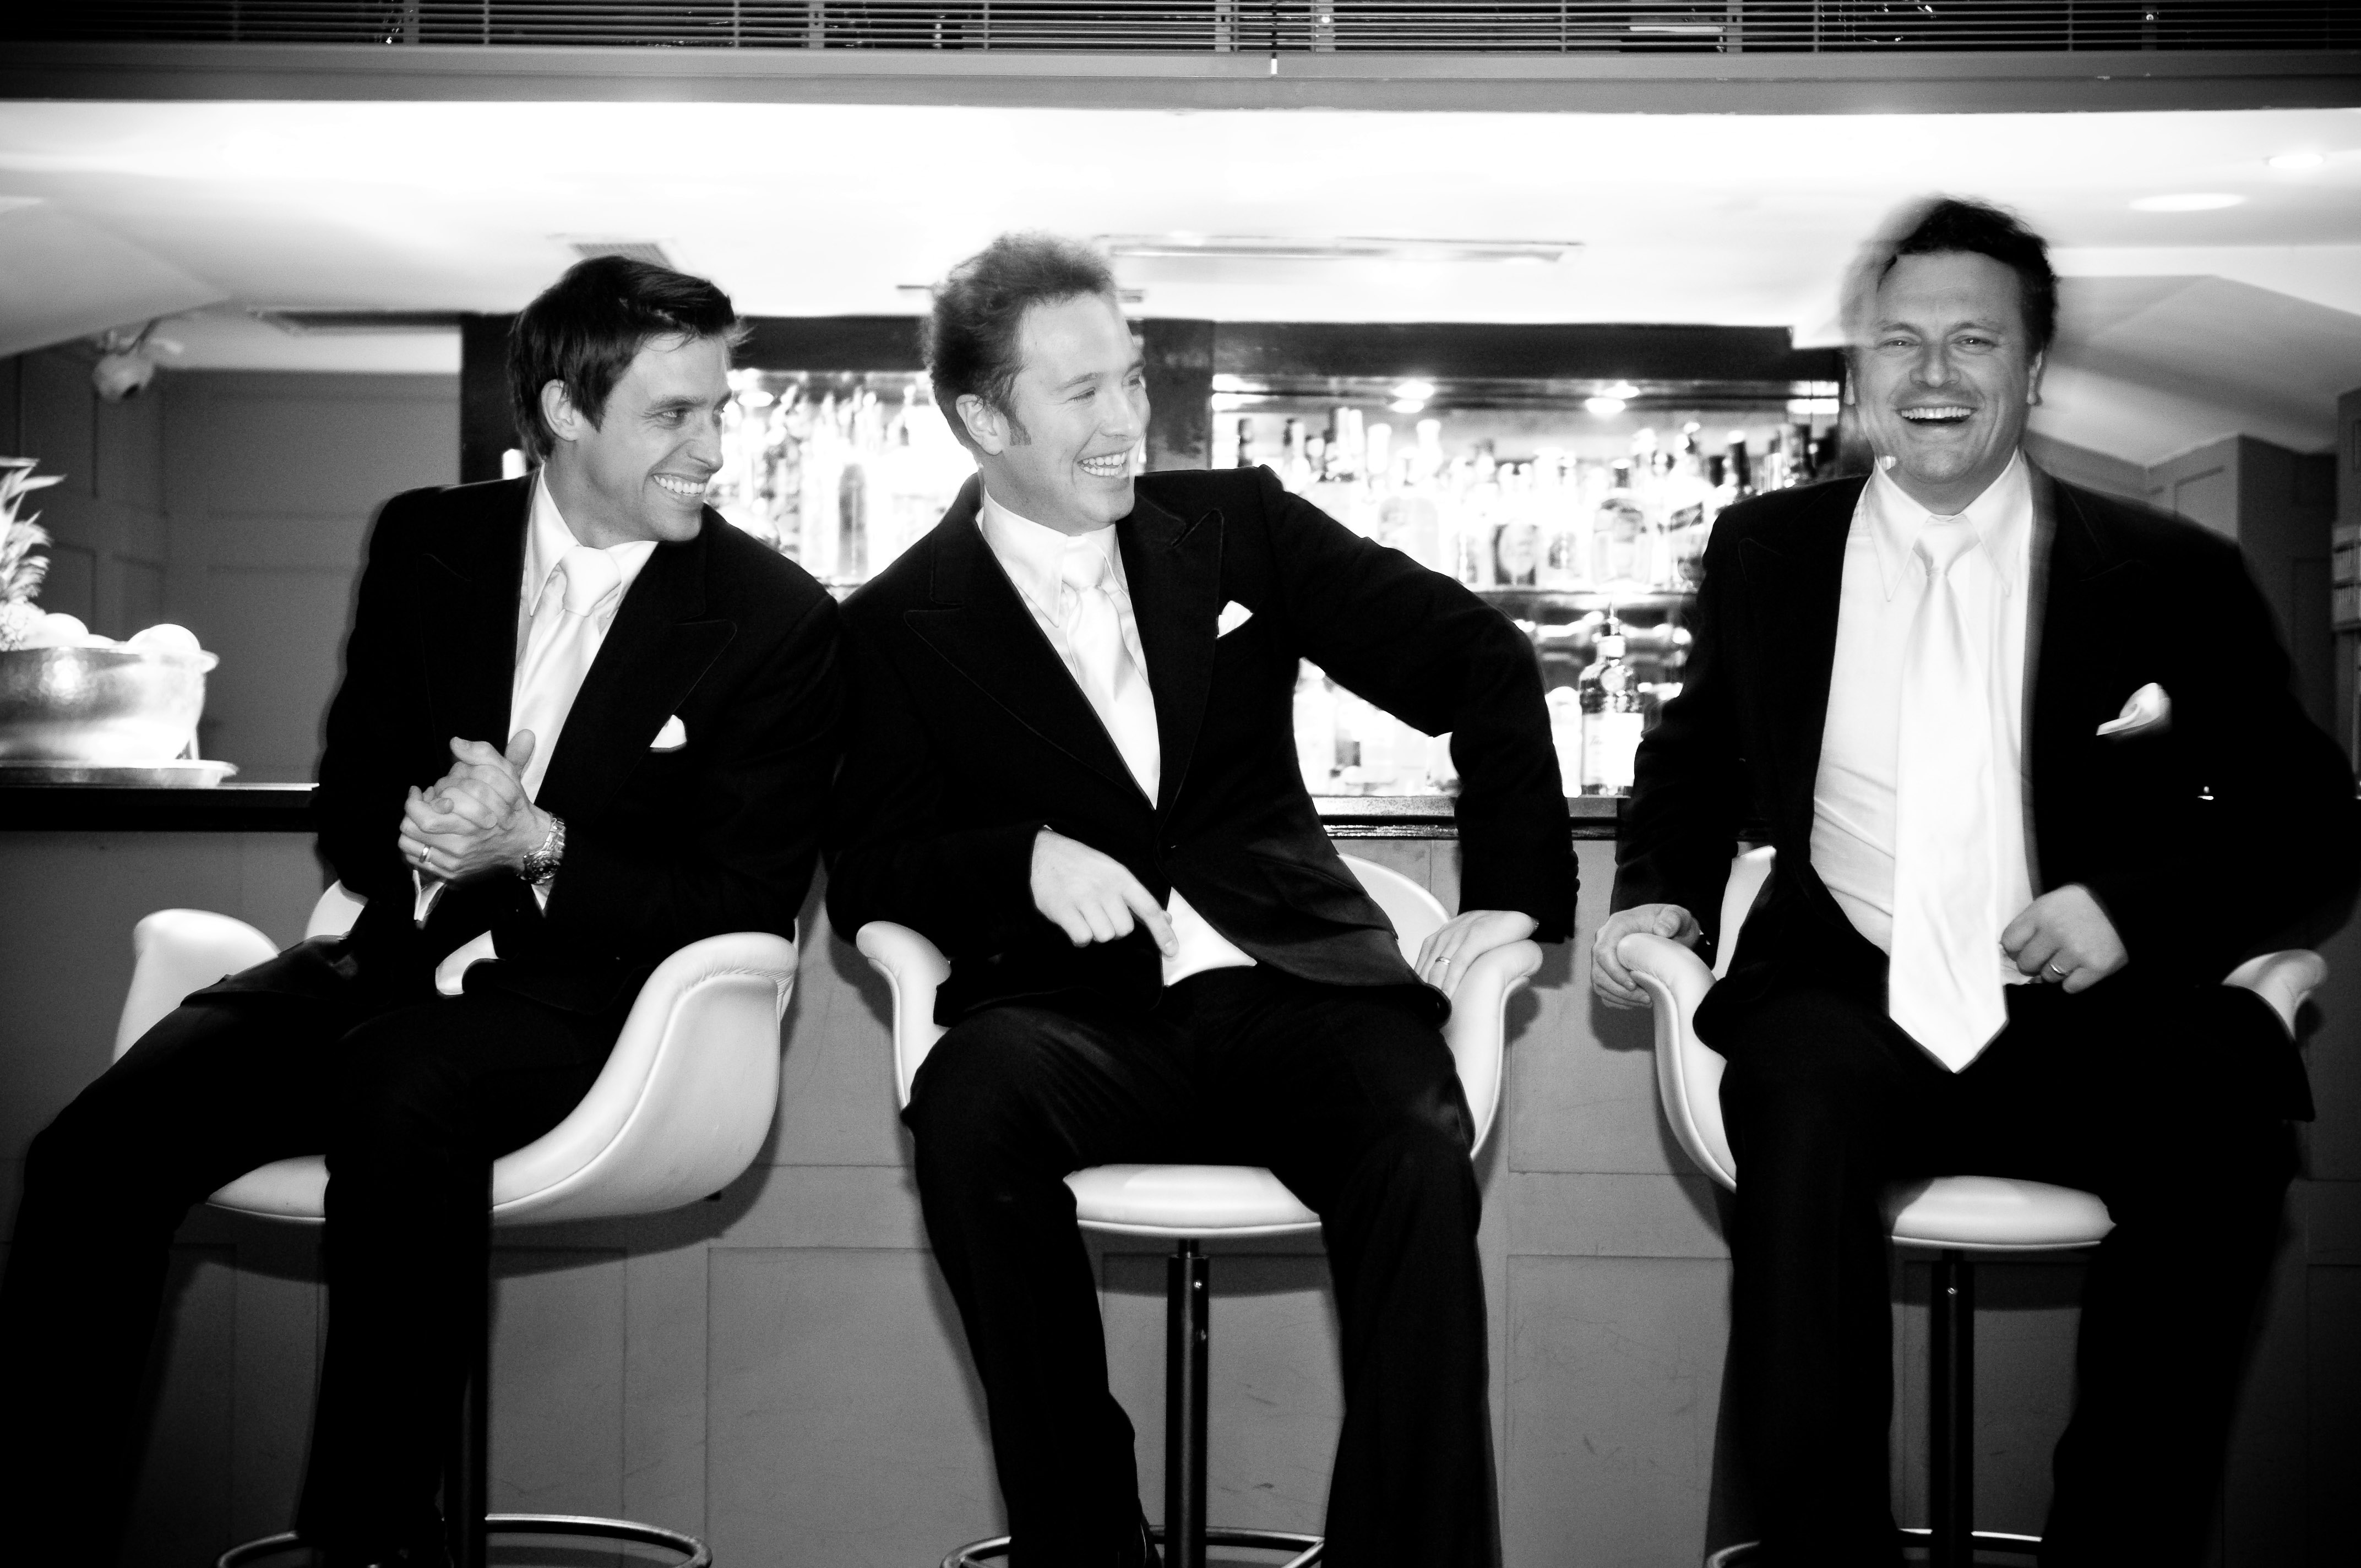 Tenors Un Limited - Opera's Rat Pack